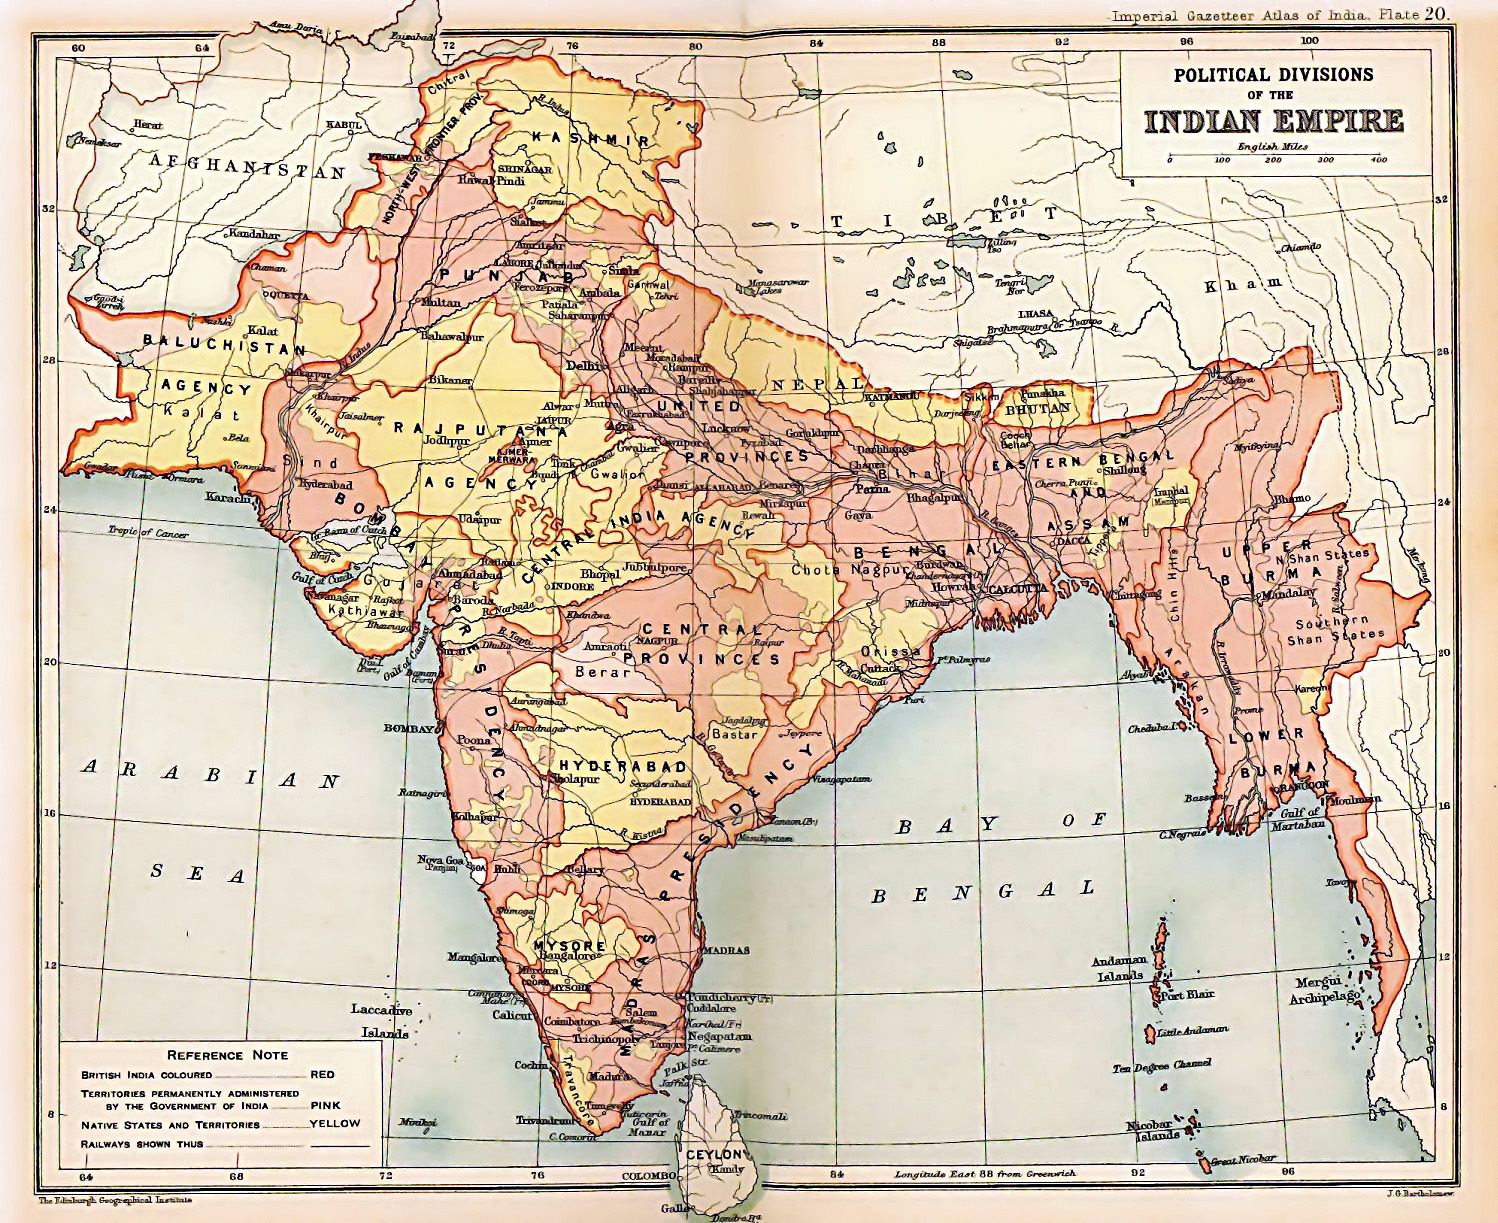 In 1947, western and eastern portions of the British Empire in South Asia became the independent state of Pakistan. - East Pakistan later became the independent nation of Bangladesh in 1971.